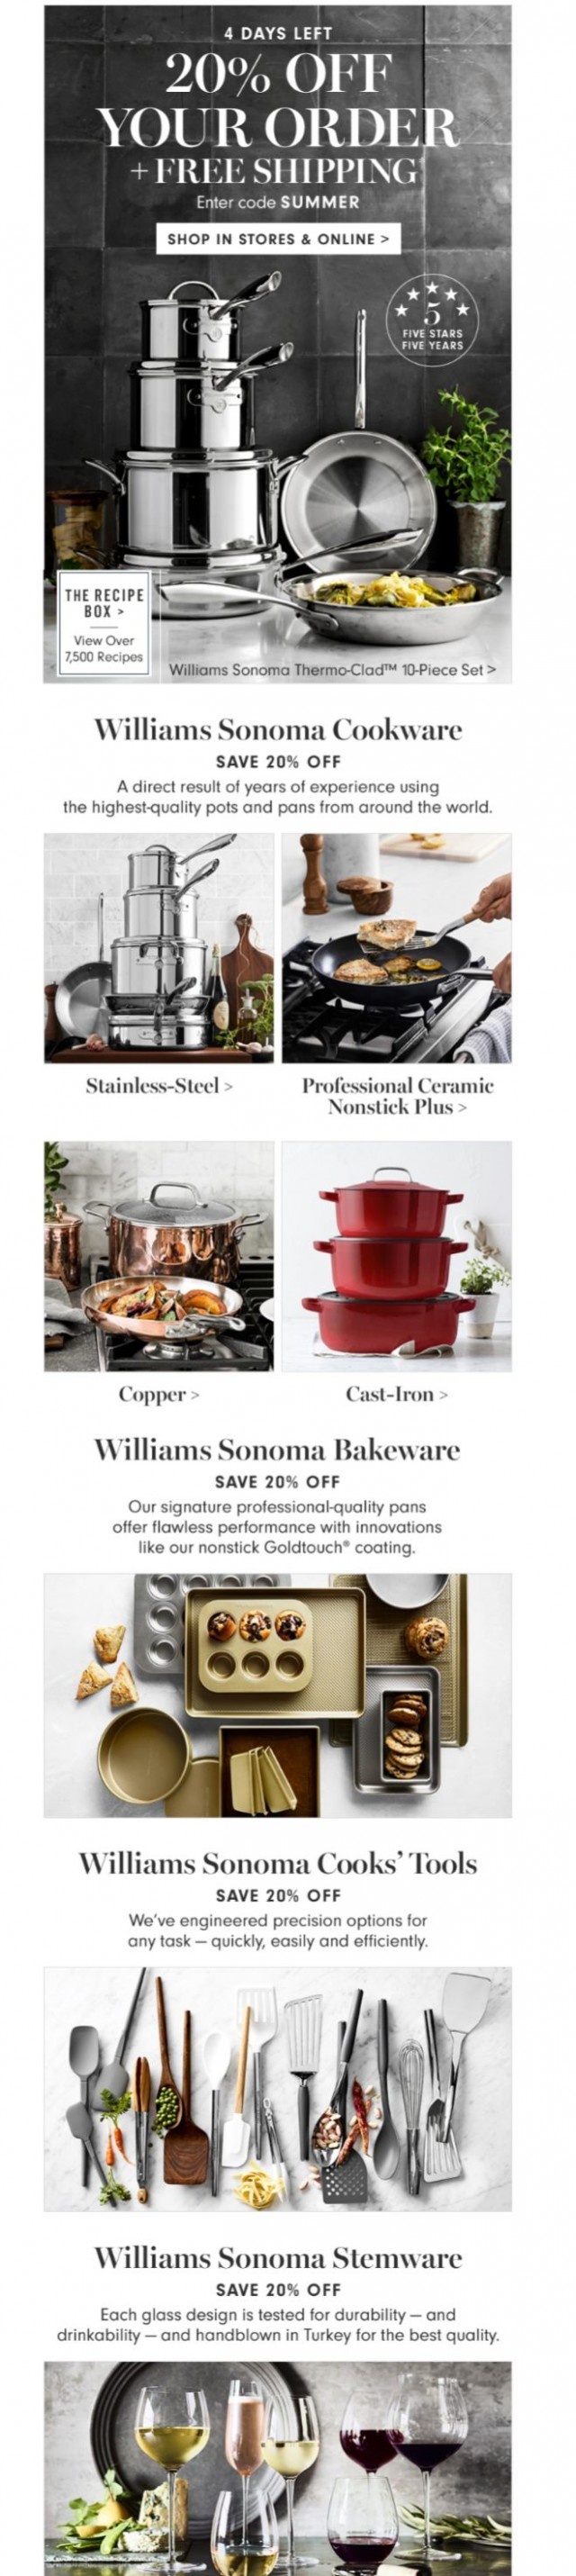 Coupon for: Williams Sonoma - 20% Off Your Order + Free Shipping All Weekend